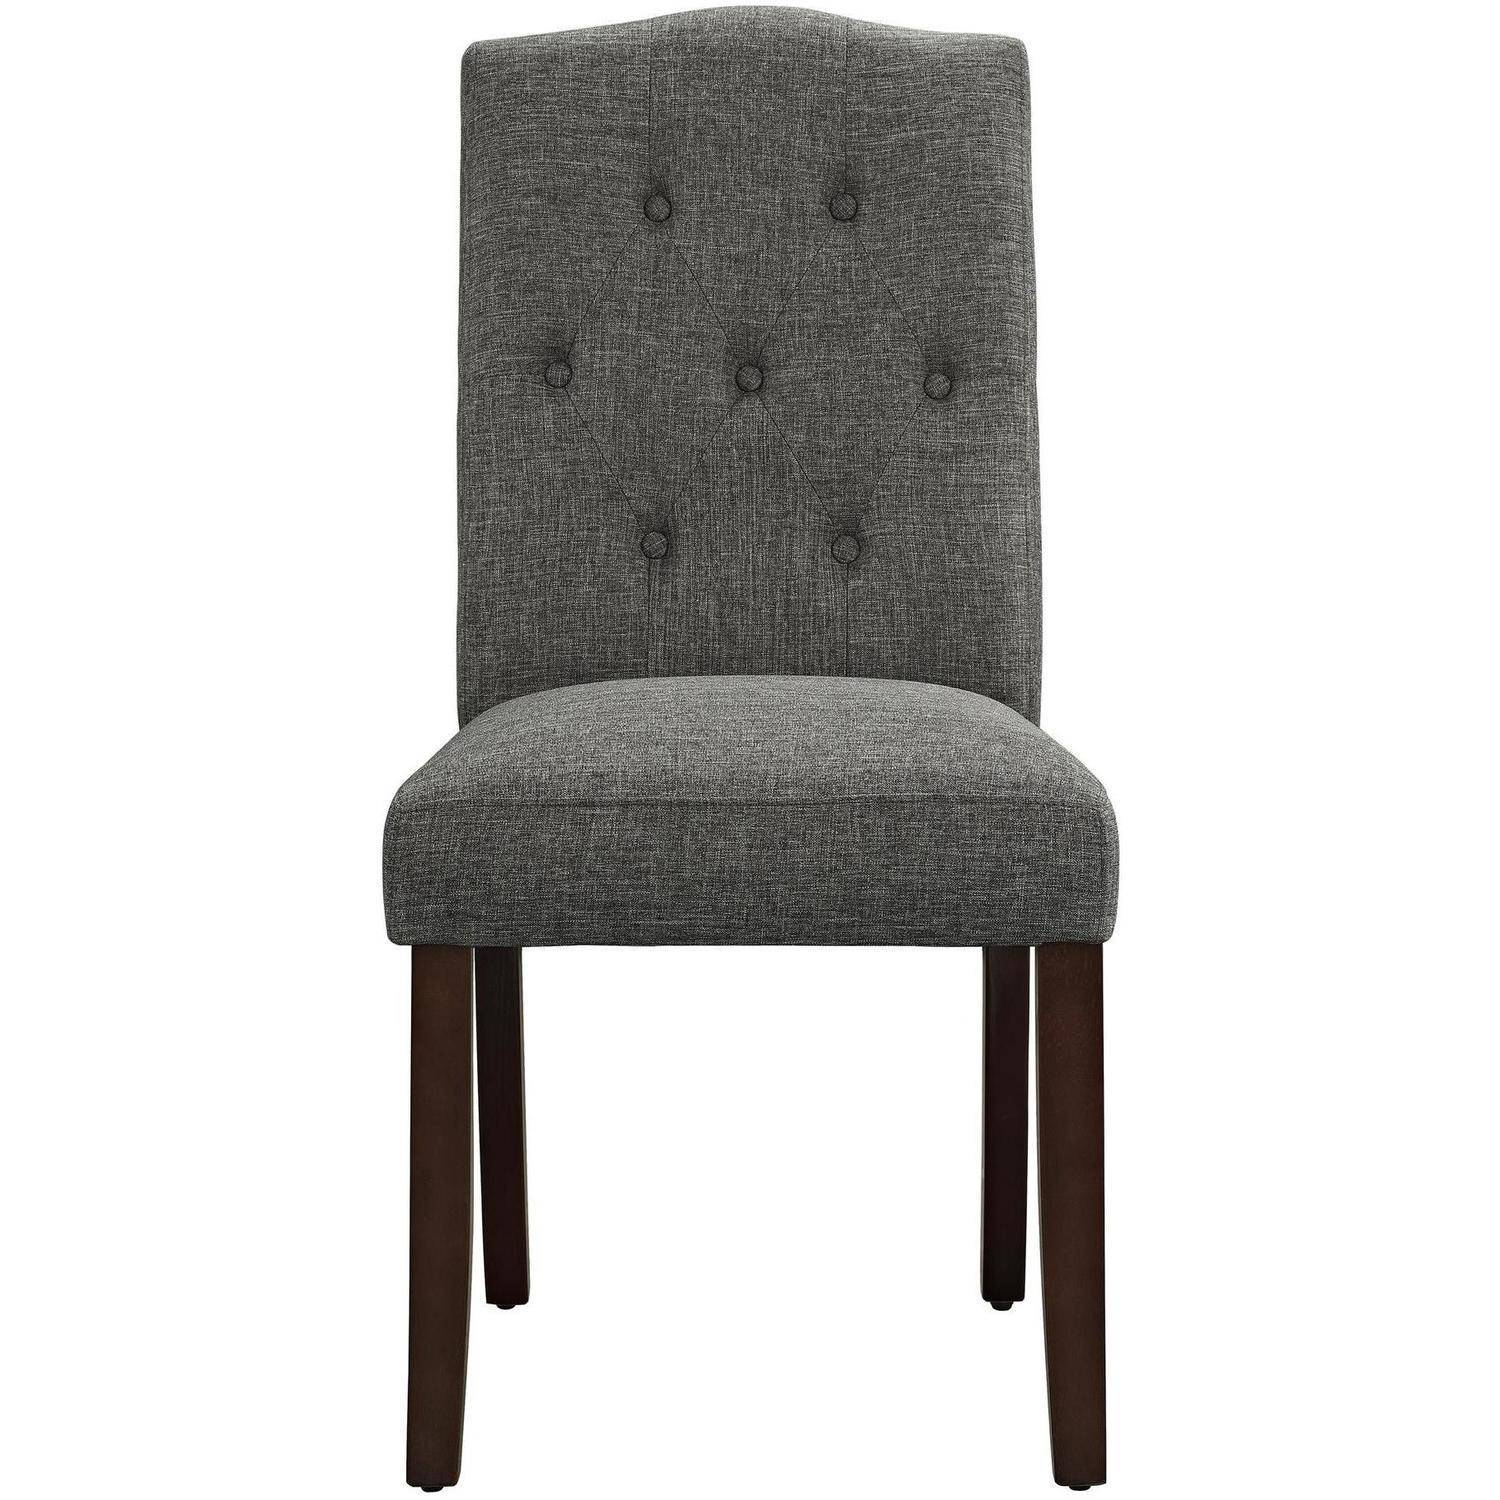 Tufted upholstered dining chairs twill tufted zoey for Dining room upholstered bench